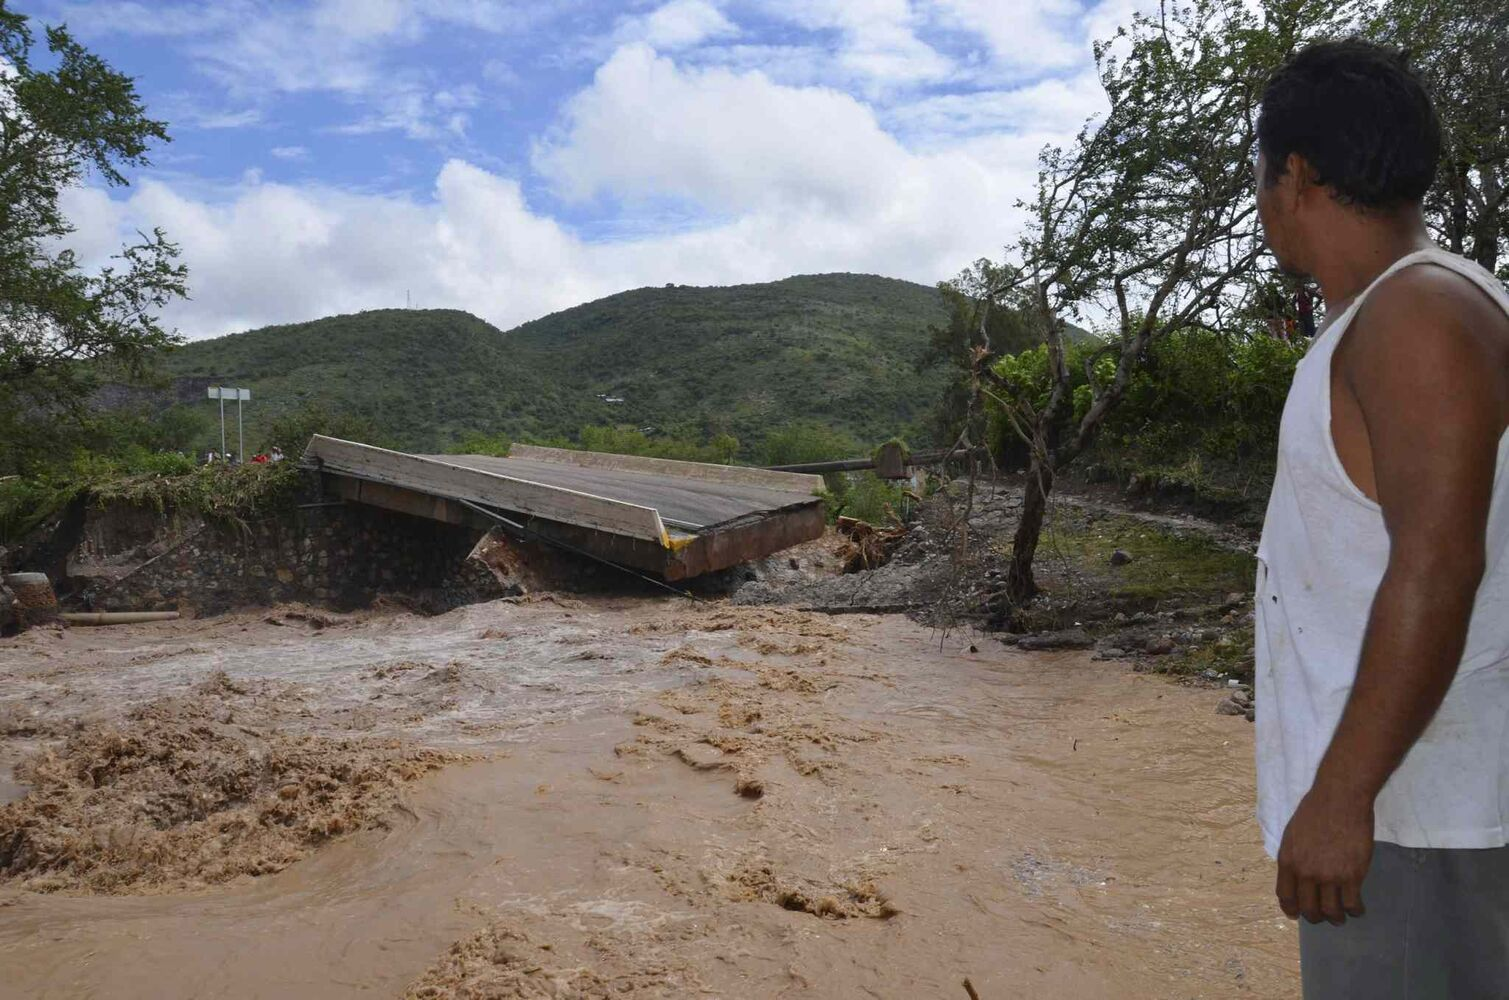 A man watches a collapsed bridge over the Huacapa River near the town of Petaquillas, Mexico, Tuesday, Sept. 17, 2013.